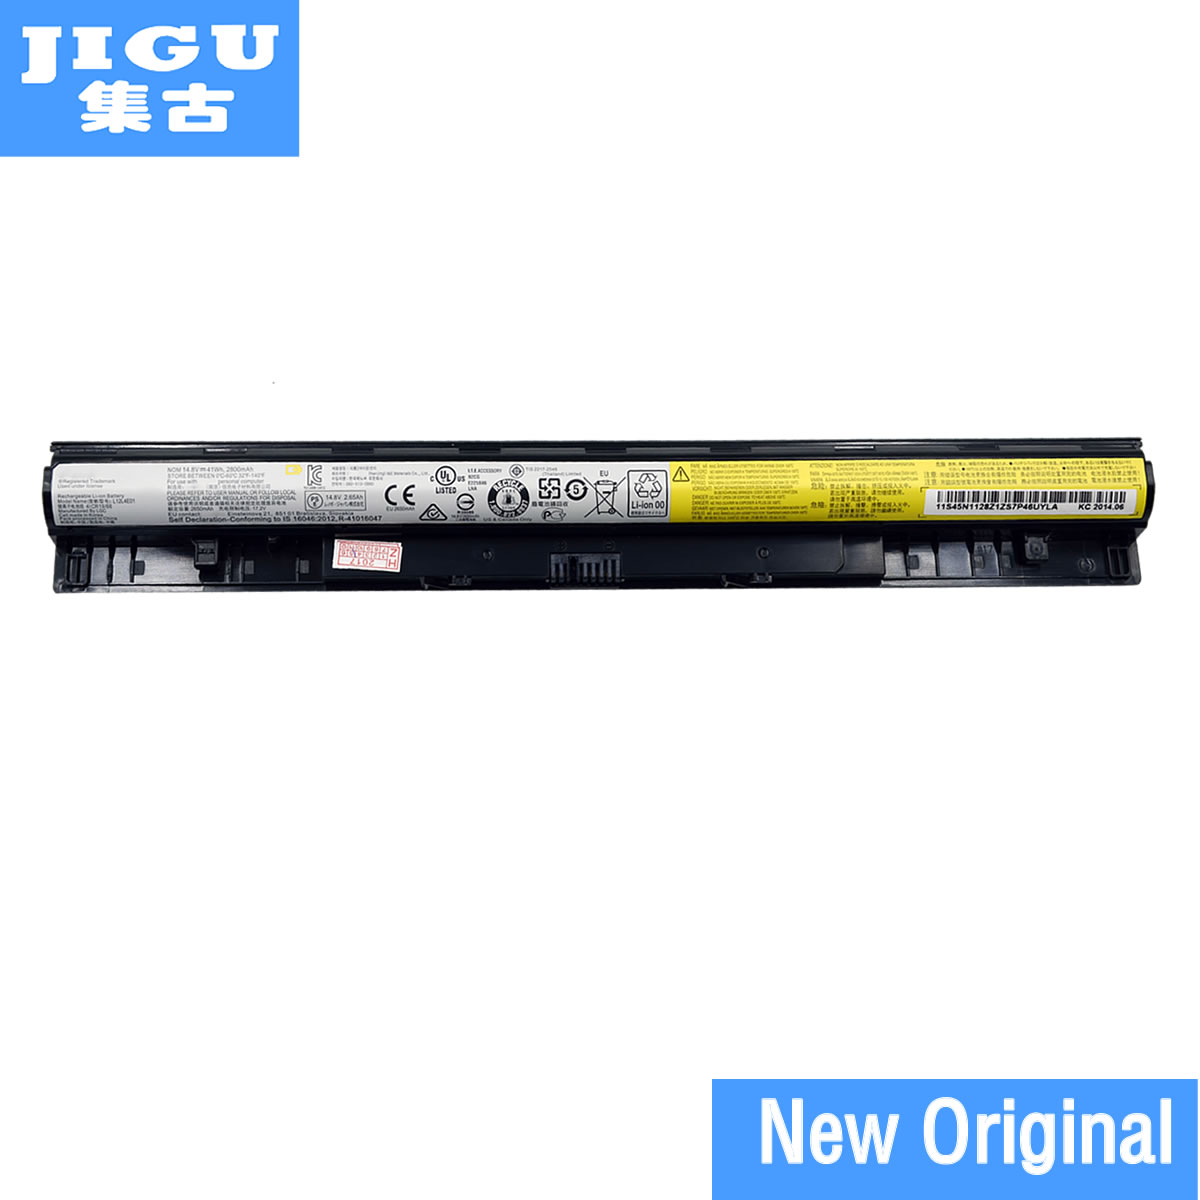 Image 1 - JIGU Original L12L4E01 Laptop Battery For LENOVO G400S G405S G410S G500S G505S G510S S410P S510P Z710 L12S4A02 L12M4E01 L12S4E01-in Laptop Batteries from Computer & Office